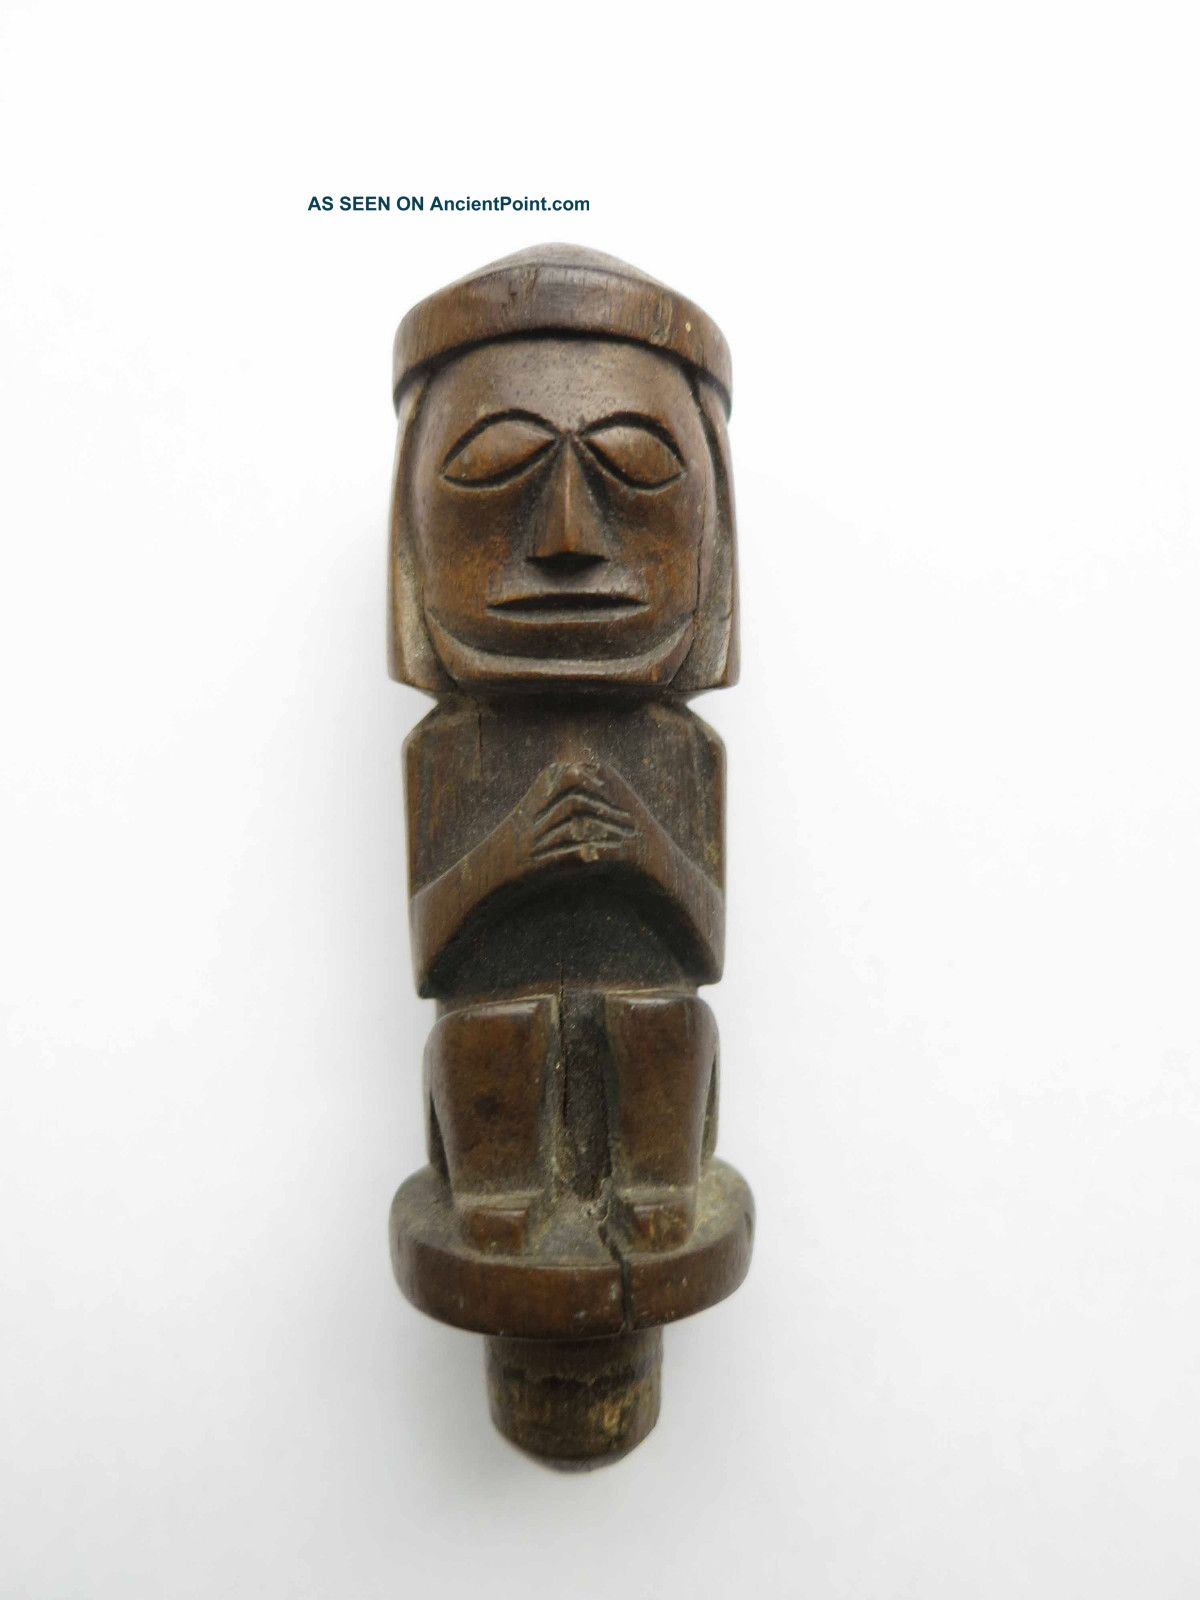 An Antique Batak Carved Wooden Stopper - Early 20th Century (nias Dayak) Pacific Islands & Oceania photo